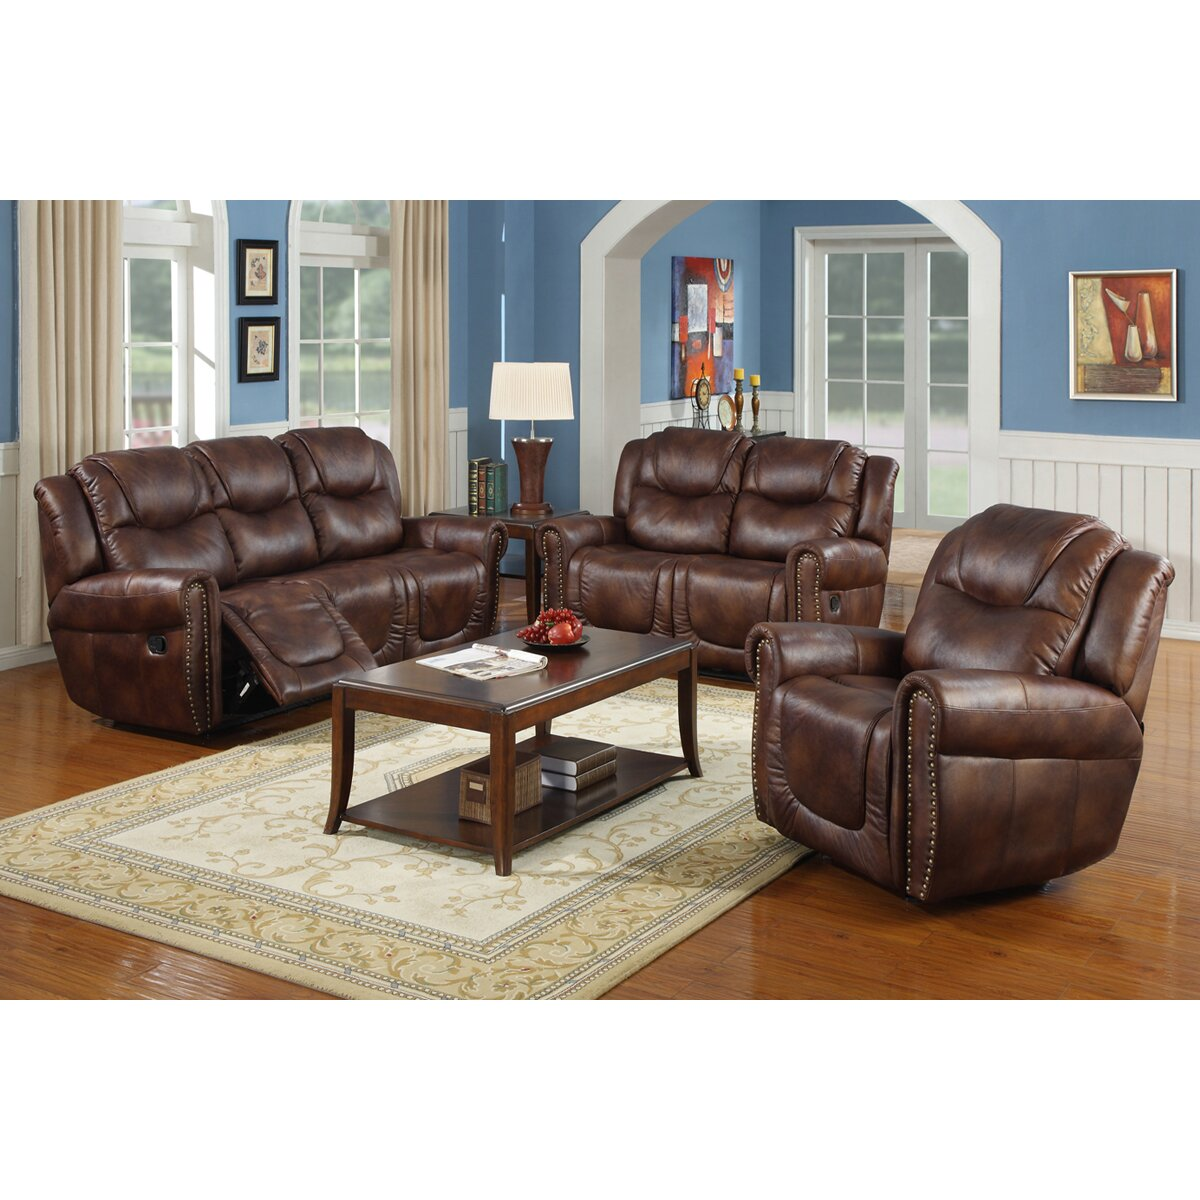 Drummond 3 Piece Living Room Set In: Beverly Fine Furniture Toledo 3 Piece Bonded Leather